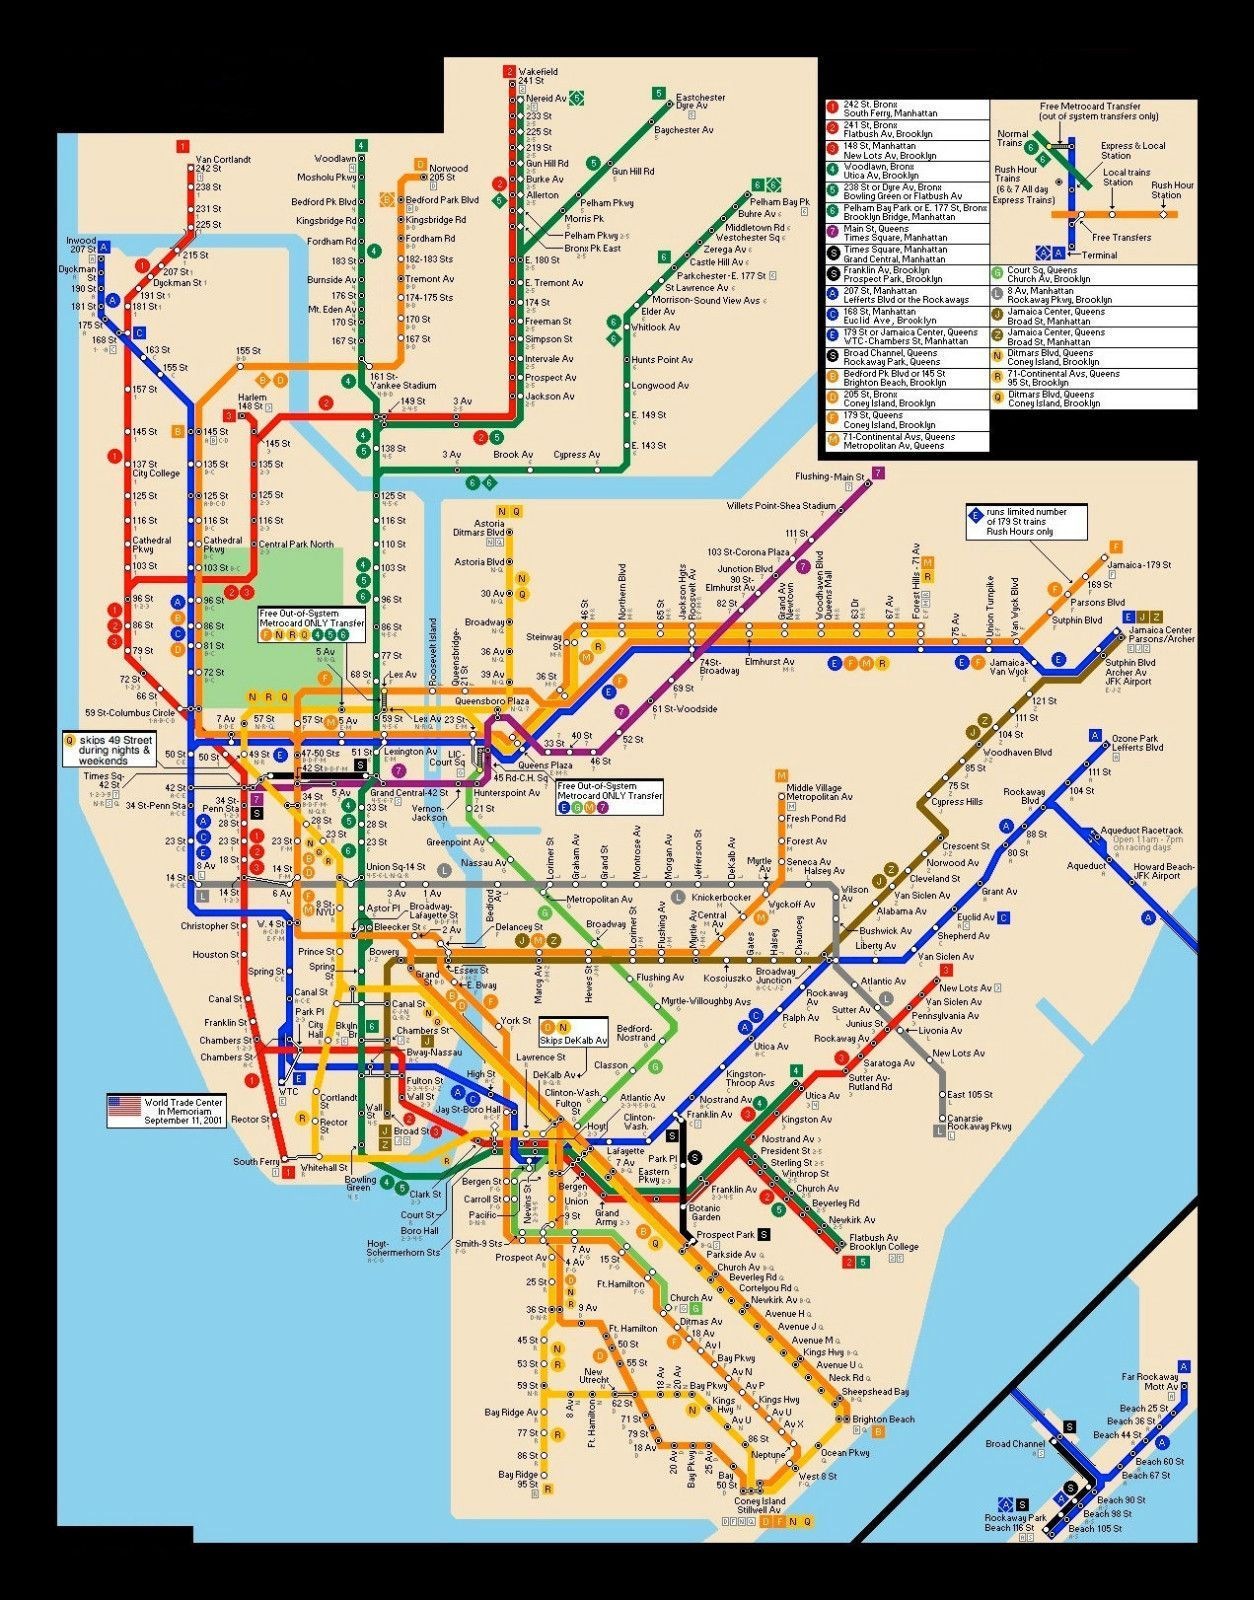 Framed New York Subway Map.Framed Print New York City Subway Map Picture Poster Modern Art